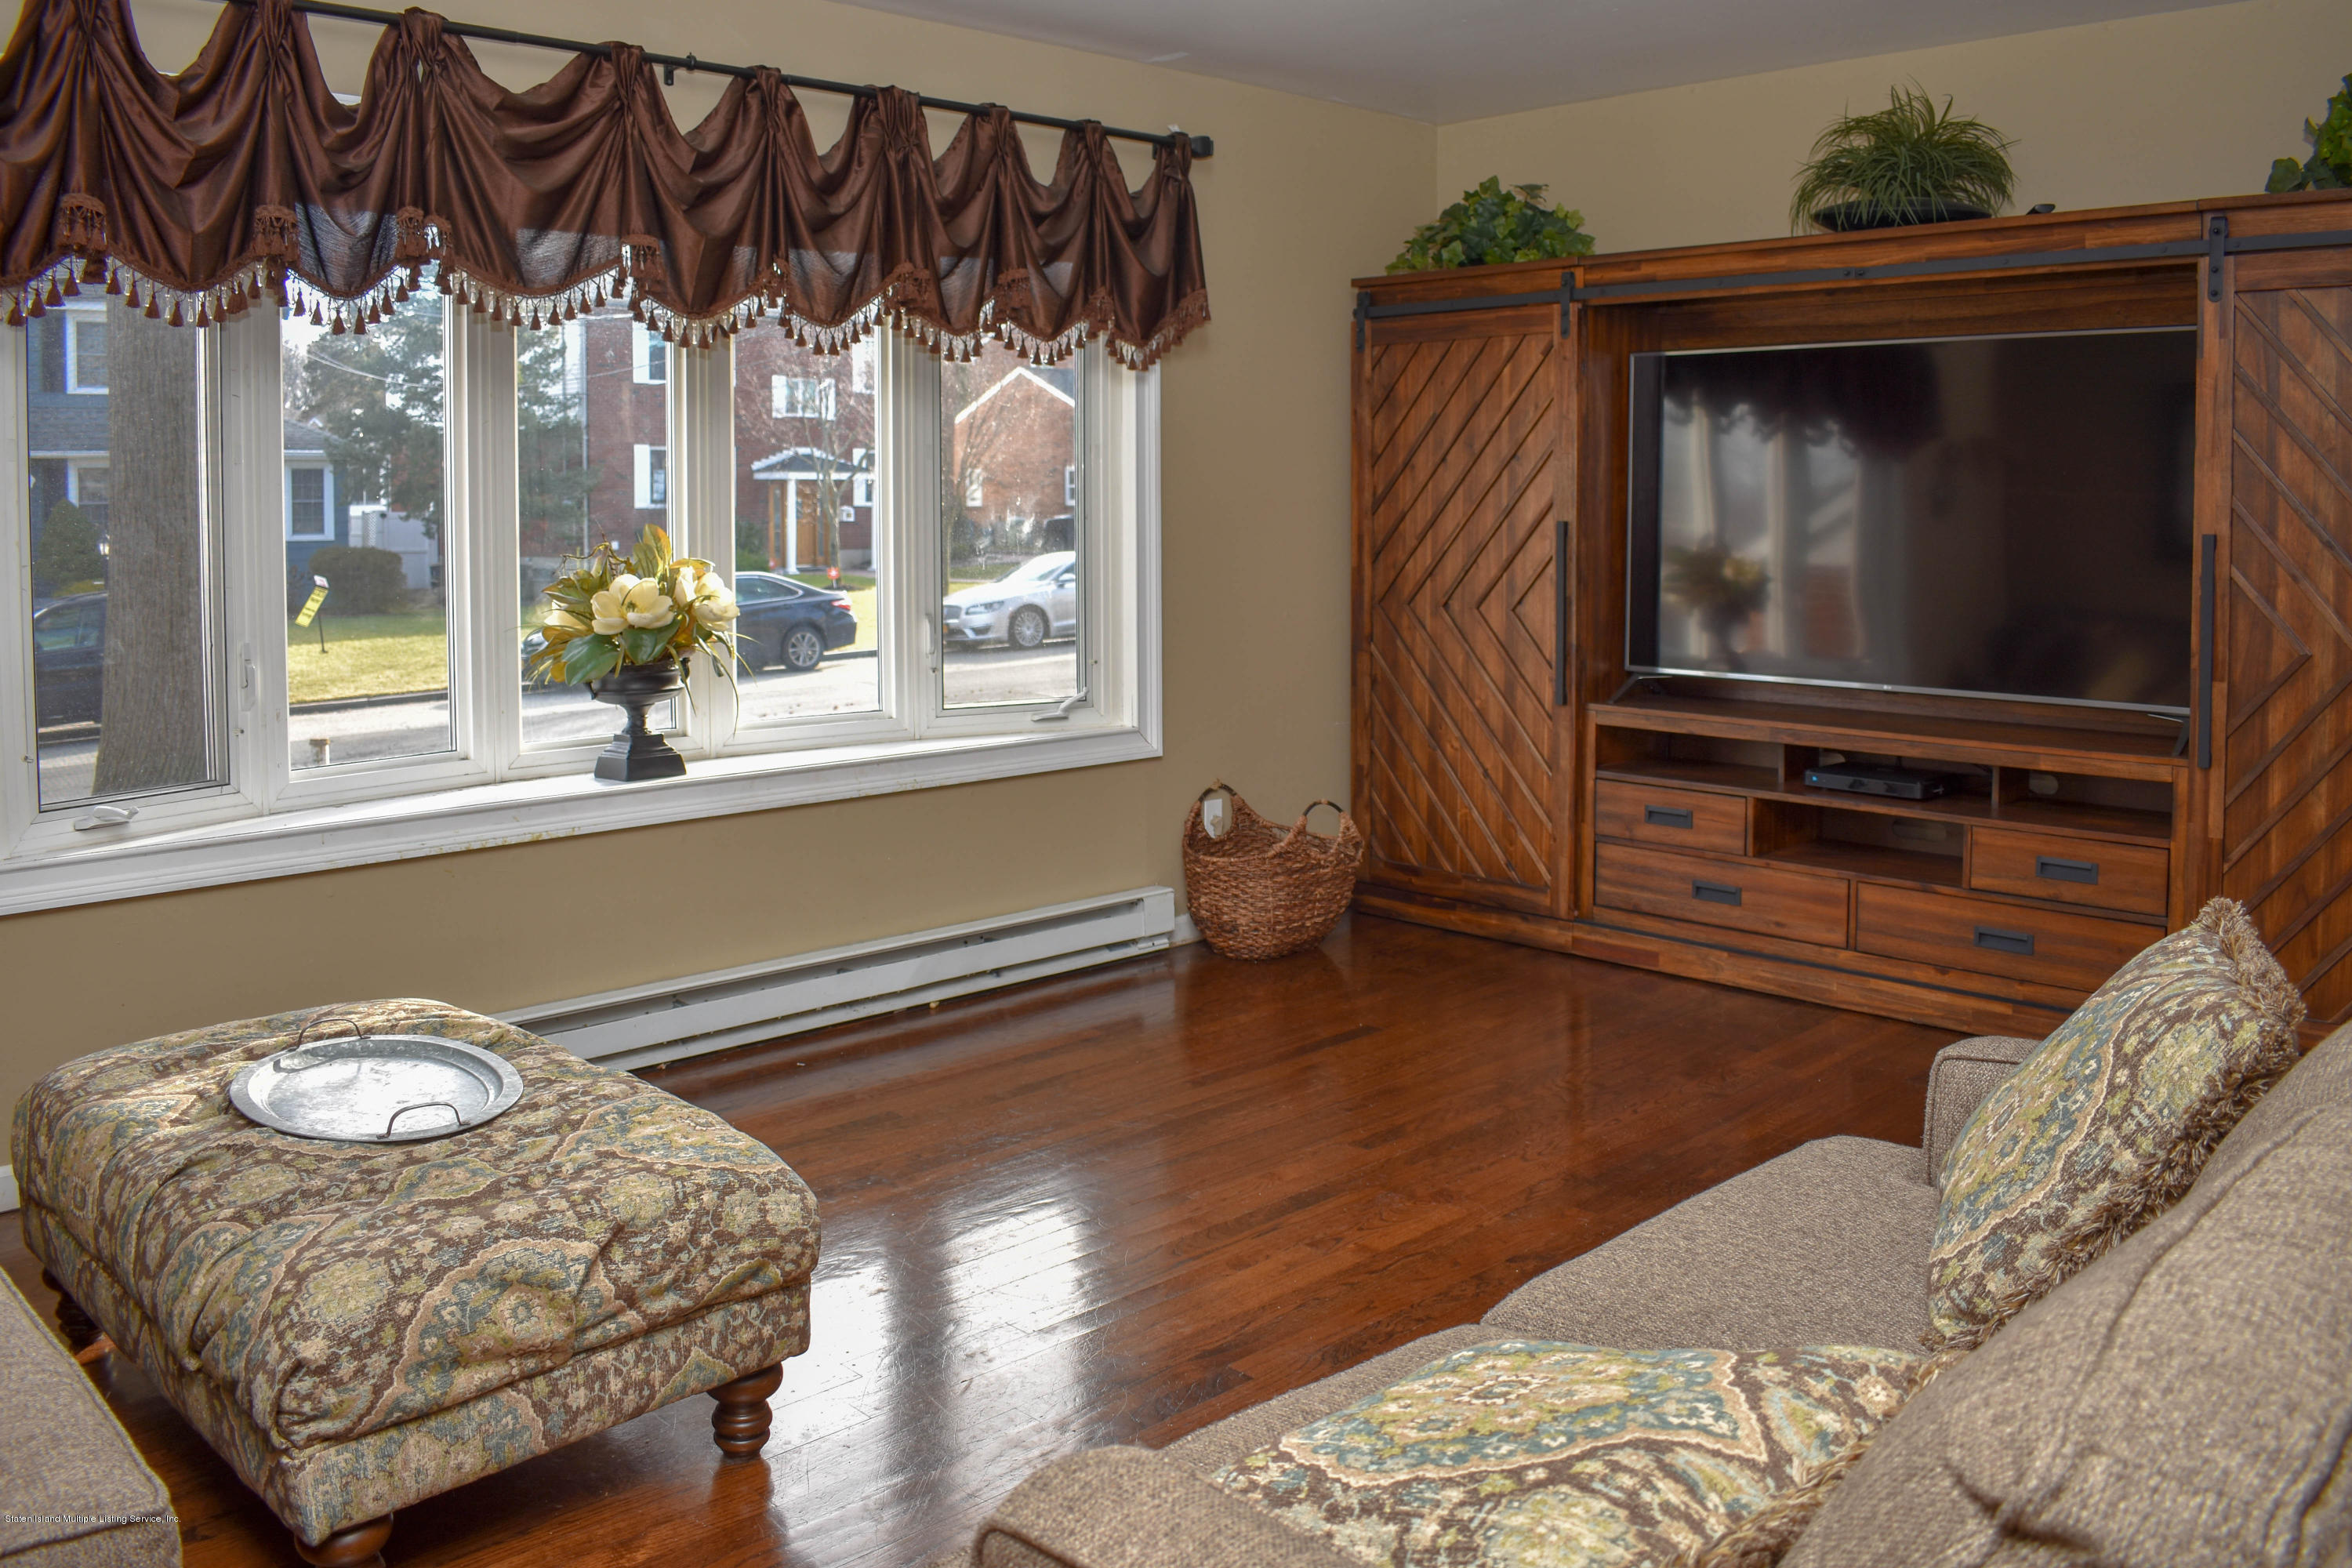 Single Family - Detached 71 Excelsior Avenue  Staten Island, NY 10309, MLS-1126131-8